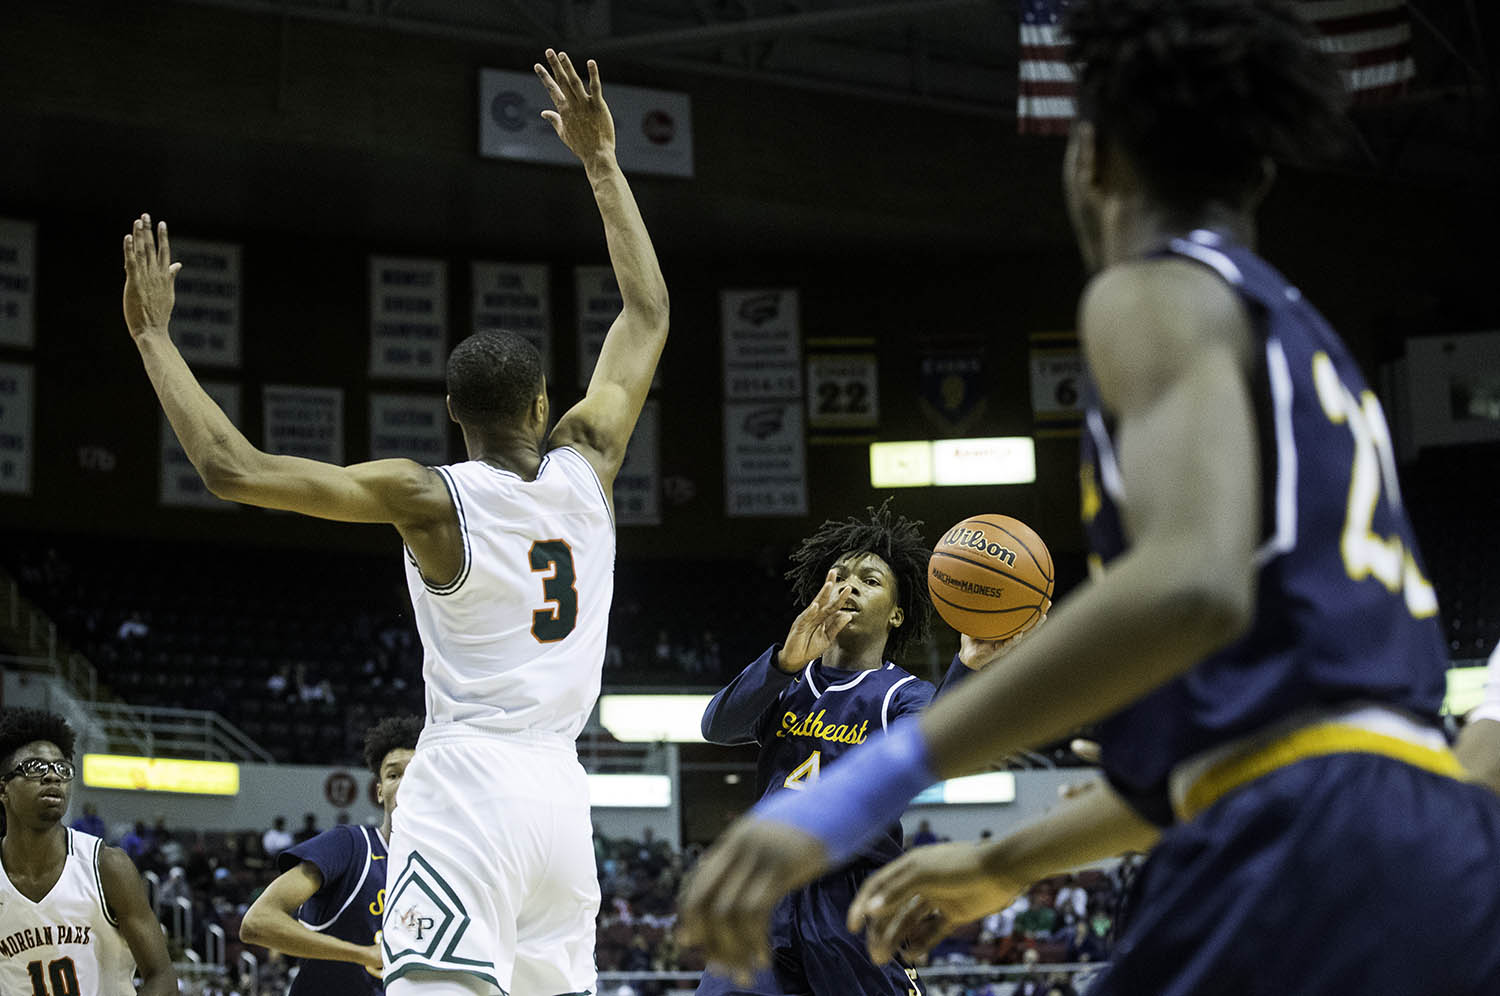 Southeast's Terrion Murdix slings a pass to Southeast's Anthony Fairlee  during the 3A championship game at Carver Arena in Peoria, Ill., Saturday, March 17, 2018. [Ted Schurter/The State Journal-Register]